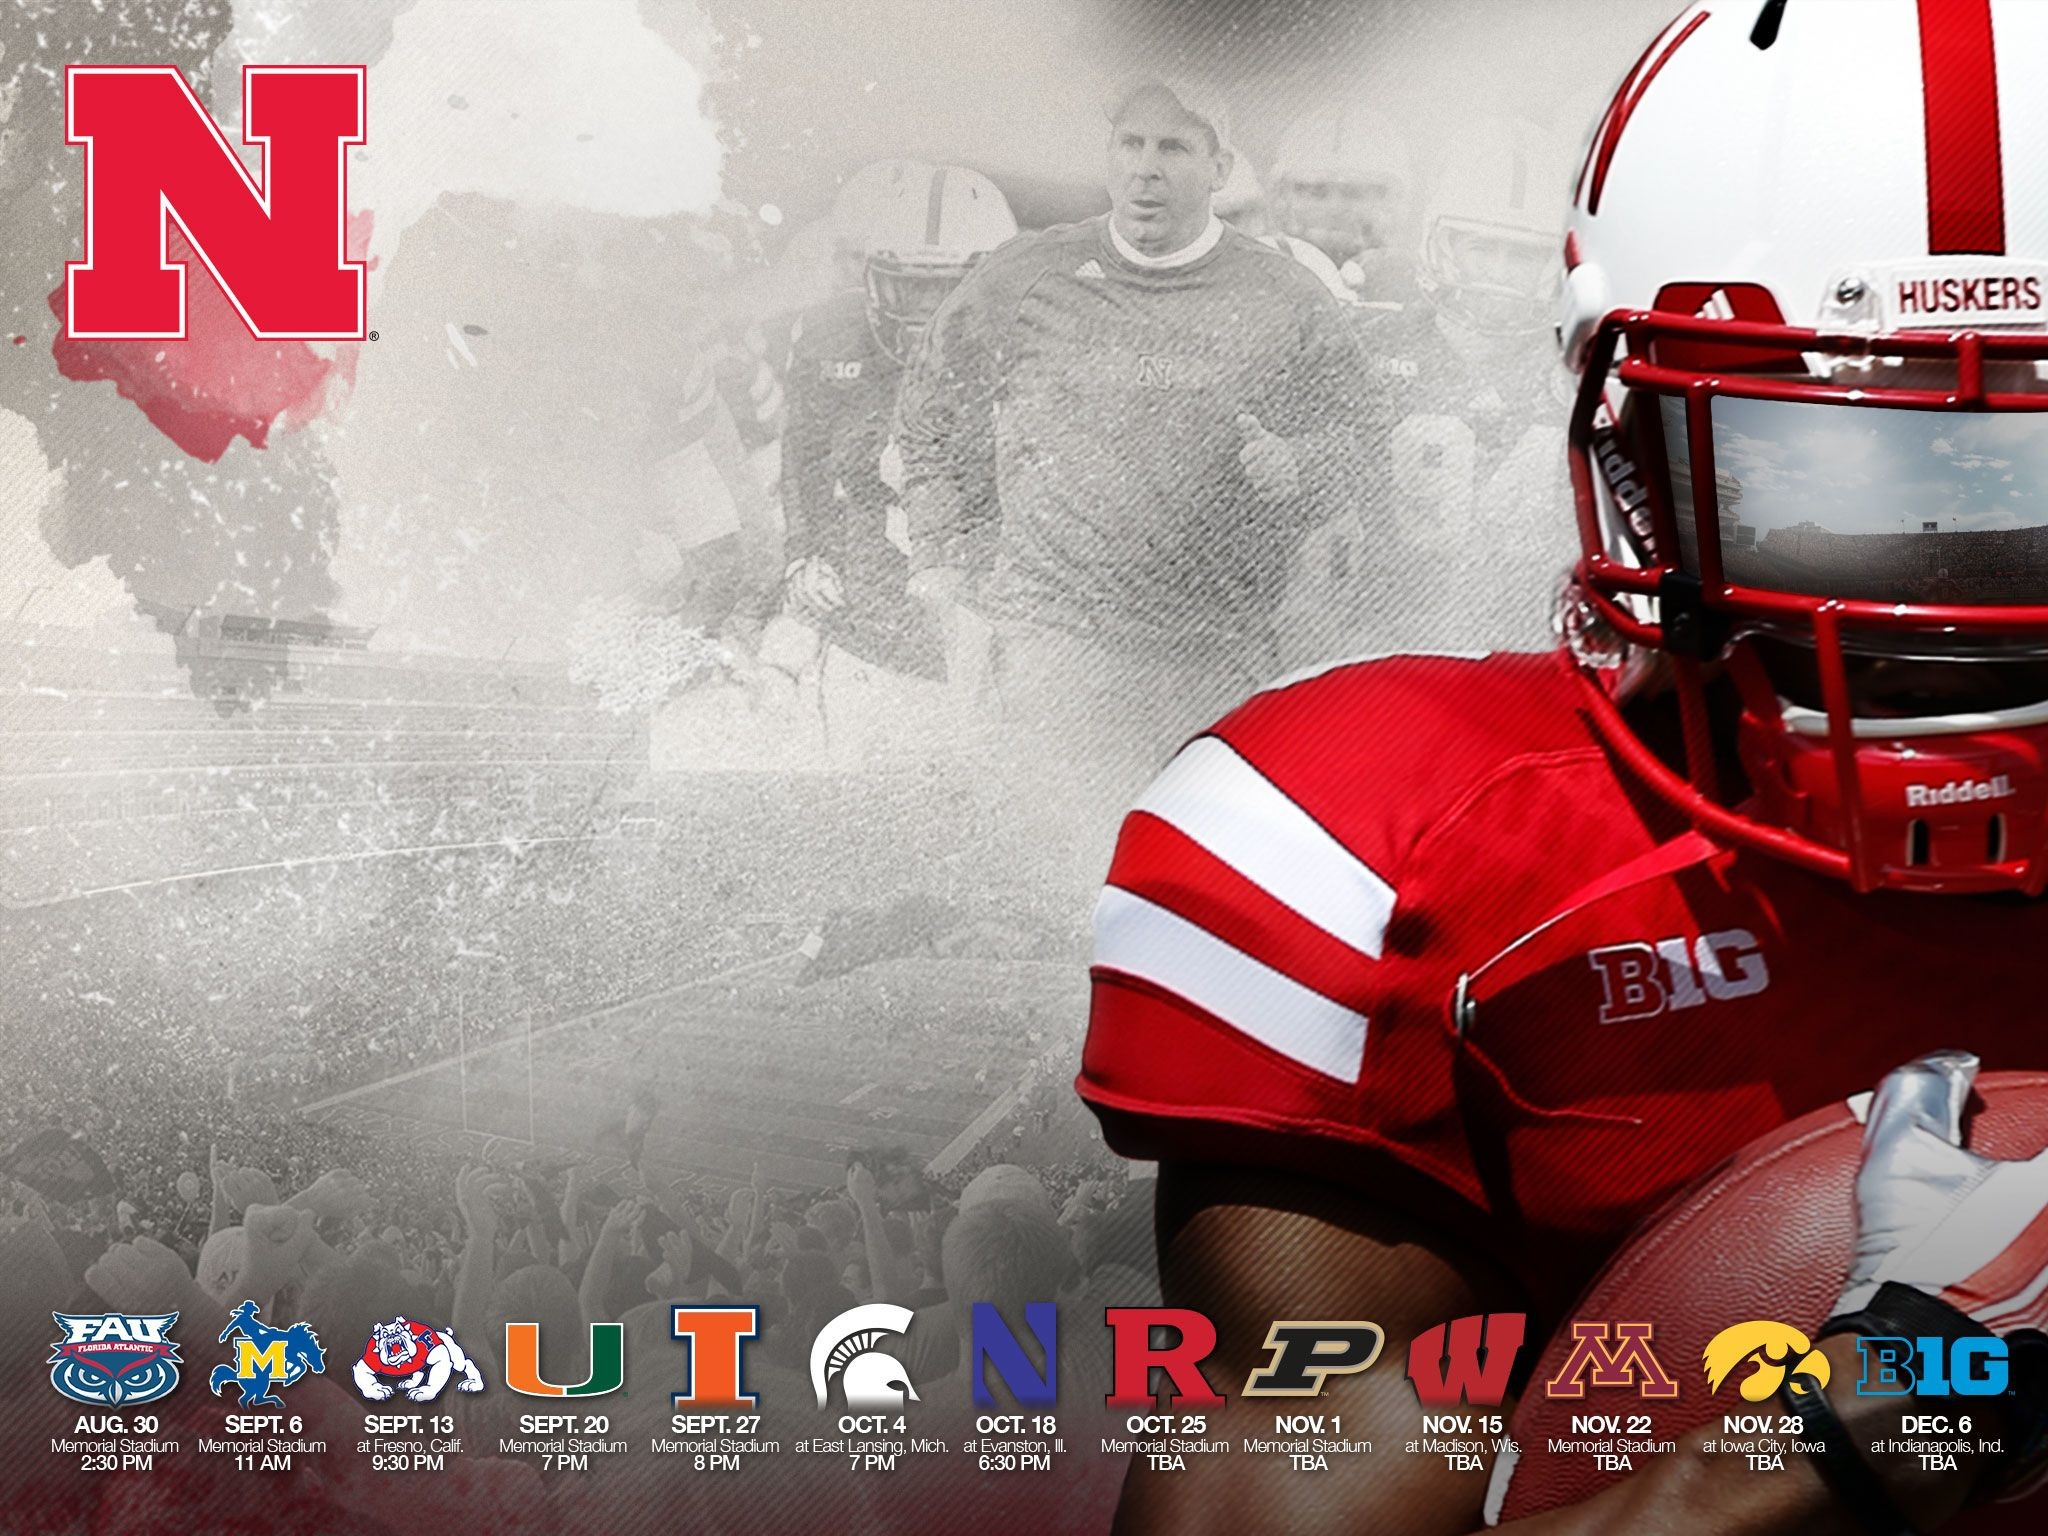 Nebraska Cornhuskers iPhone Wallpaper 73 images 2048x1536